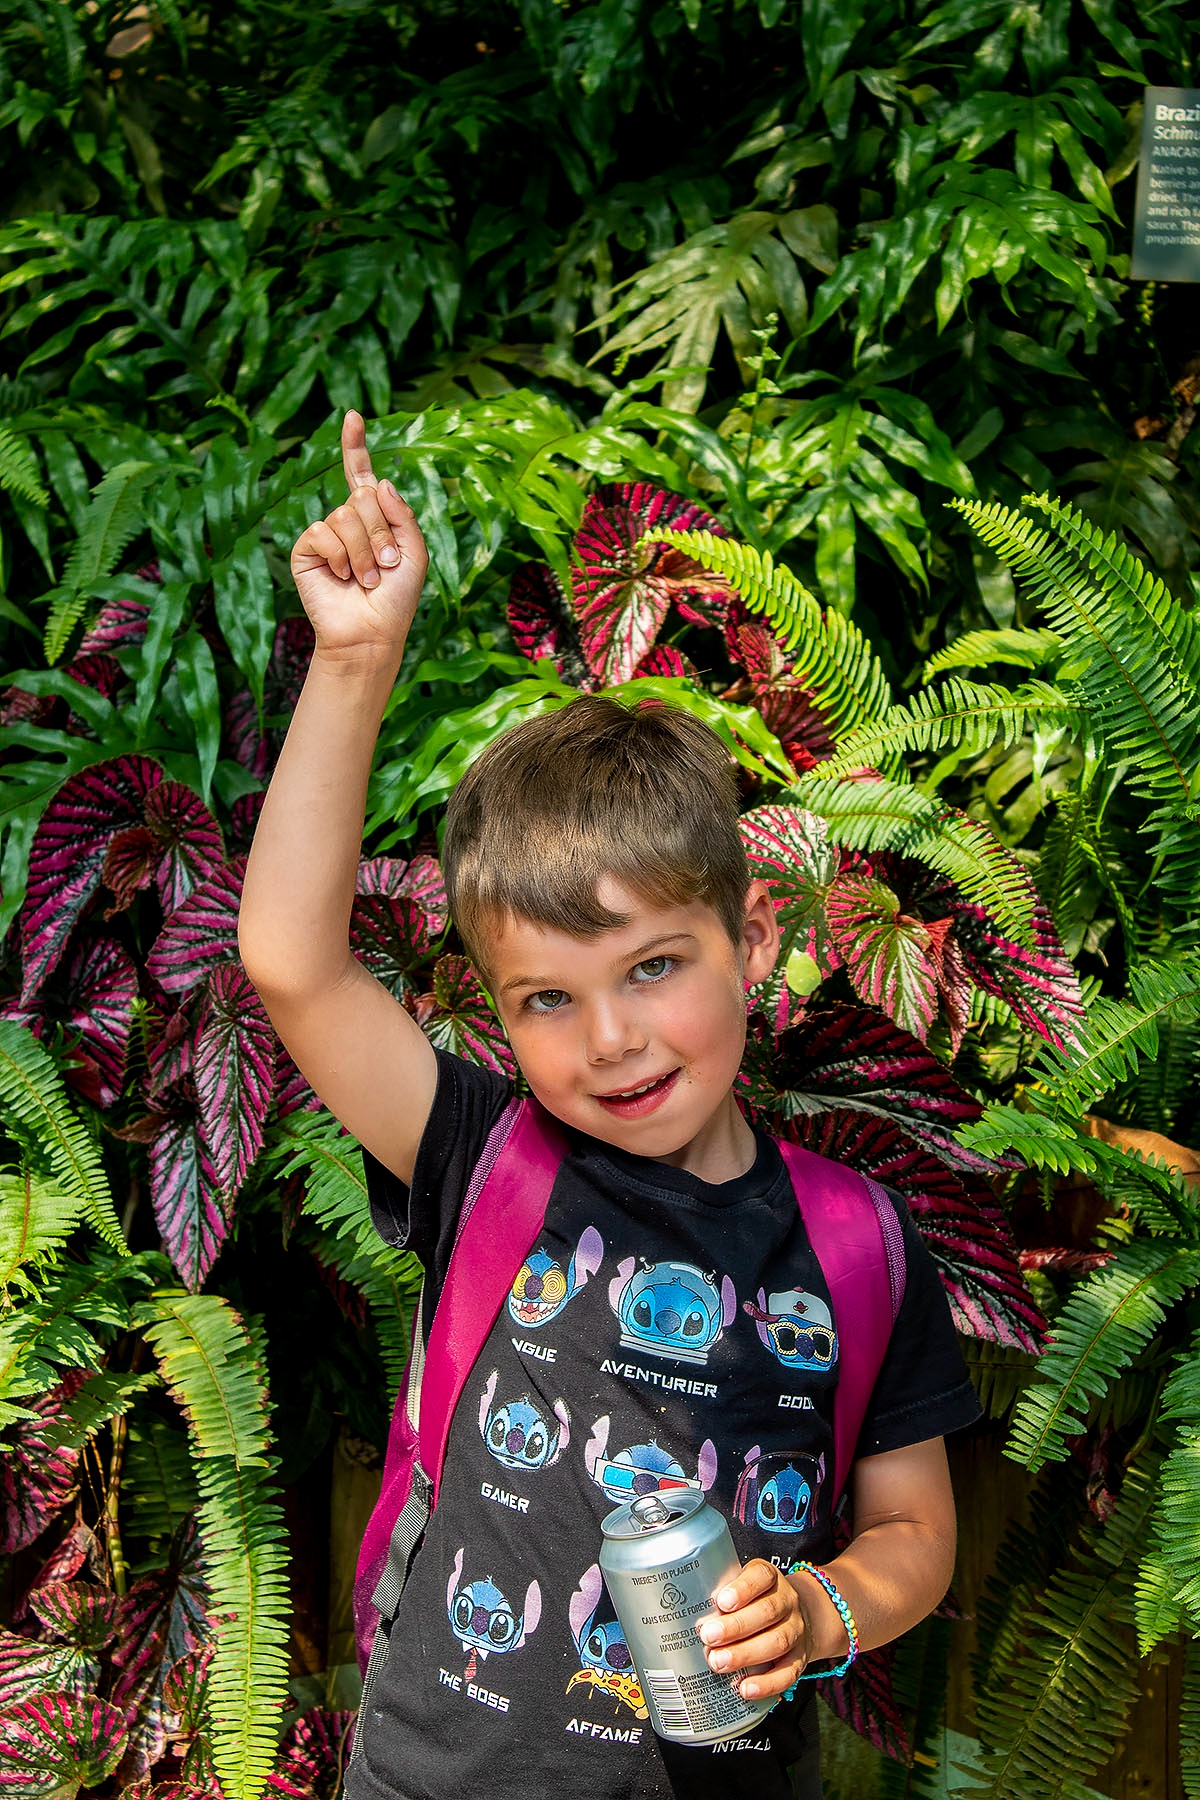 Luke pointing upwards as he stands in front of a collection of tropical ferns